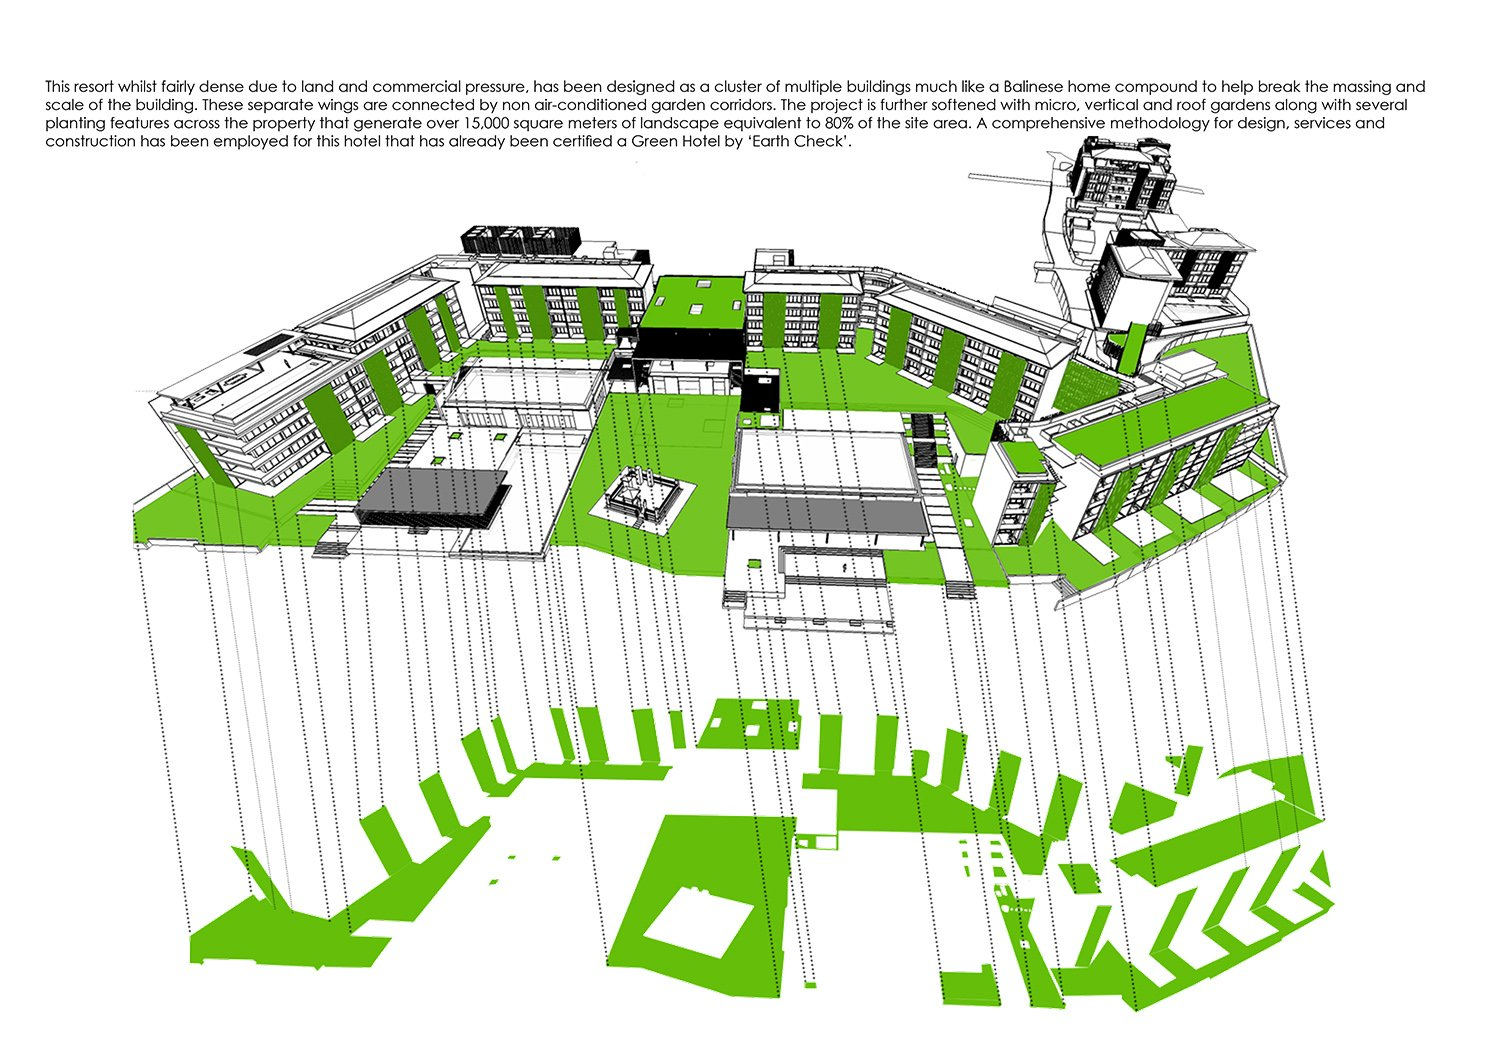 Diagram showing Building Greens }